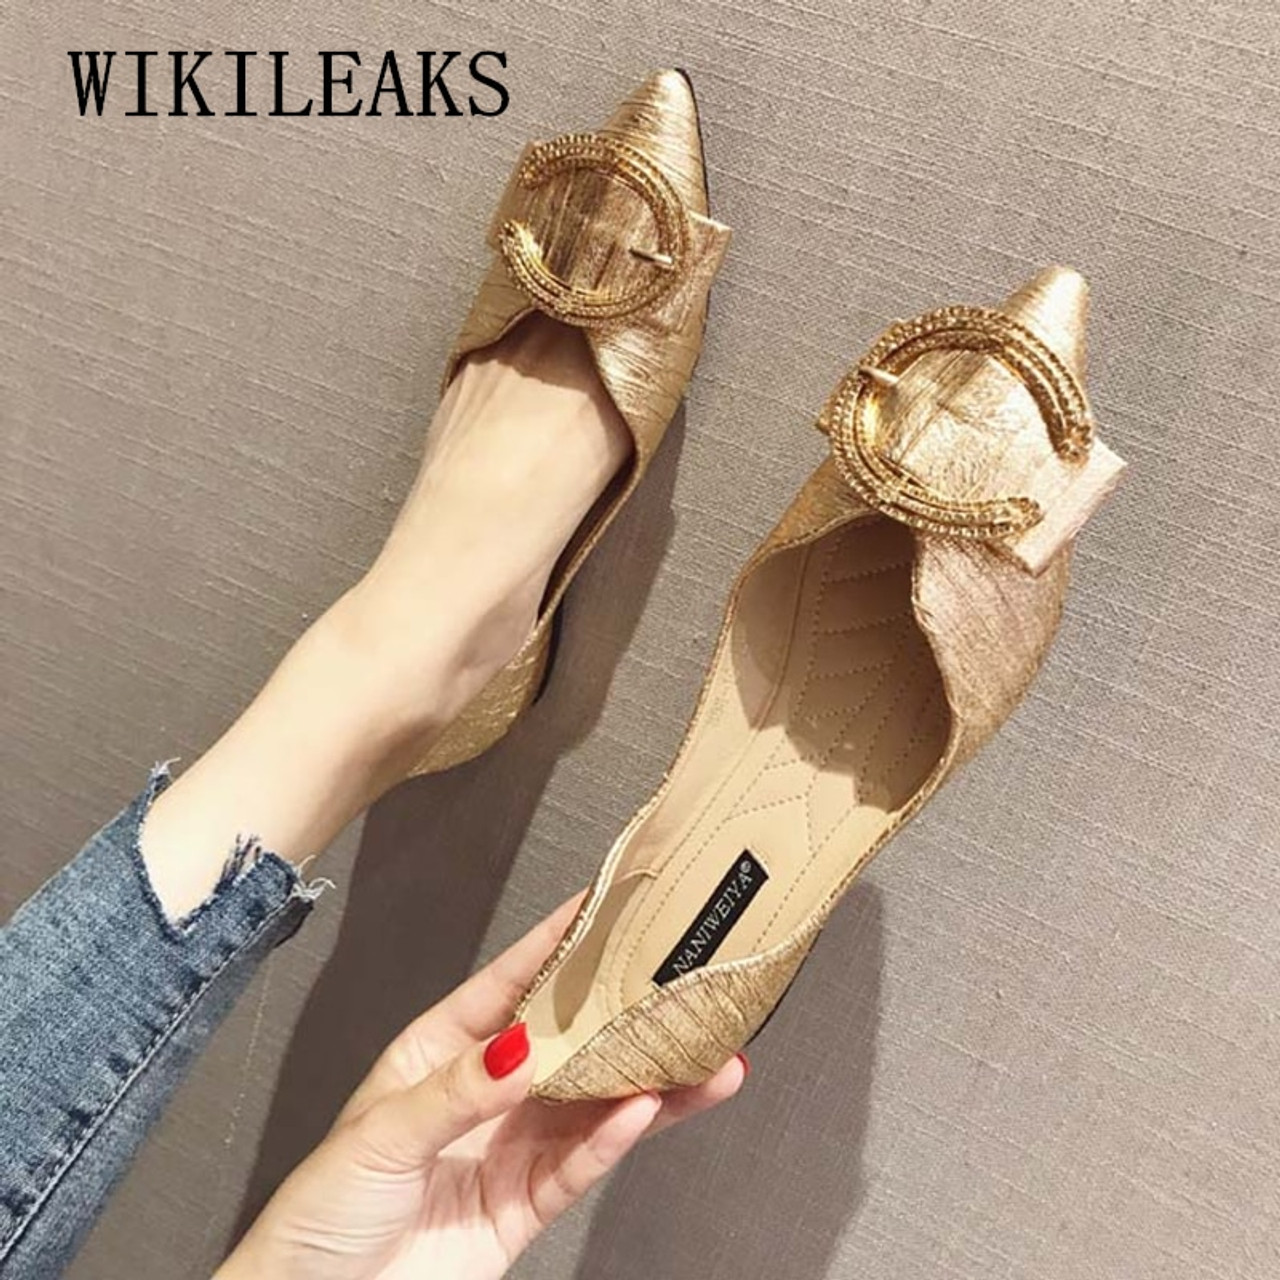 designer shoes women luxury 2018 flat shoes woman flats loafers women shoes  black gold red slip on shoes for women creepers - OnshopDeals.Com 4d8cb42d35ec